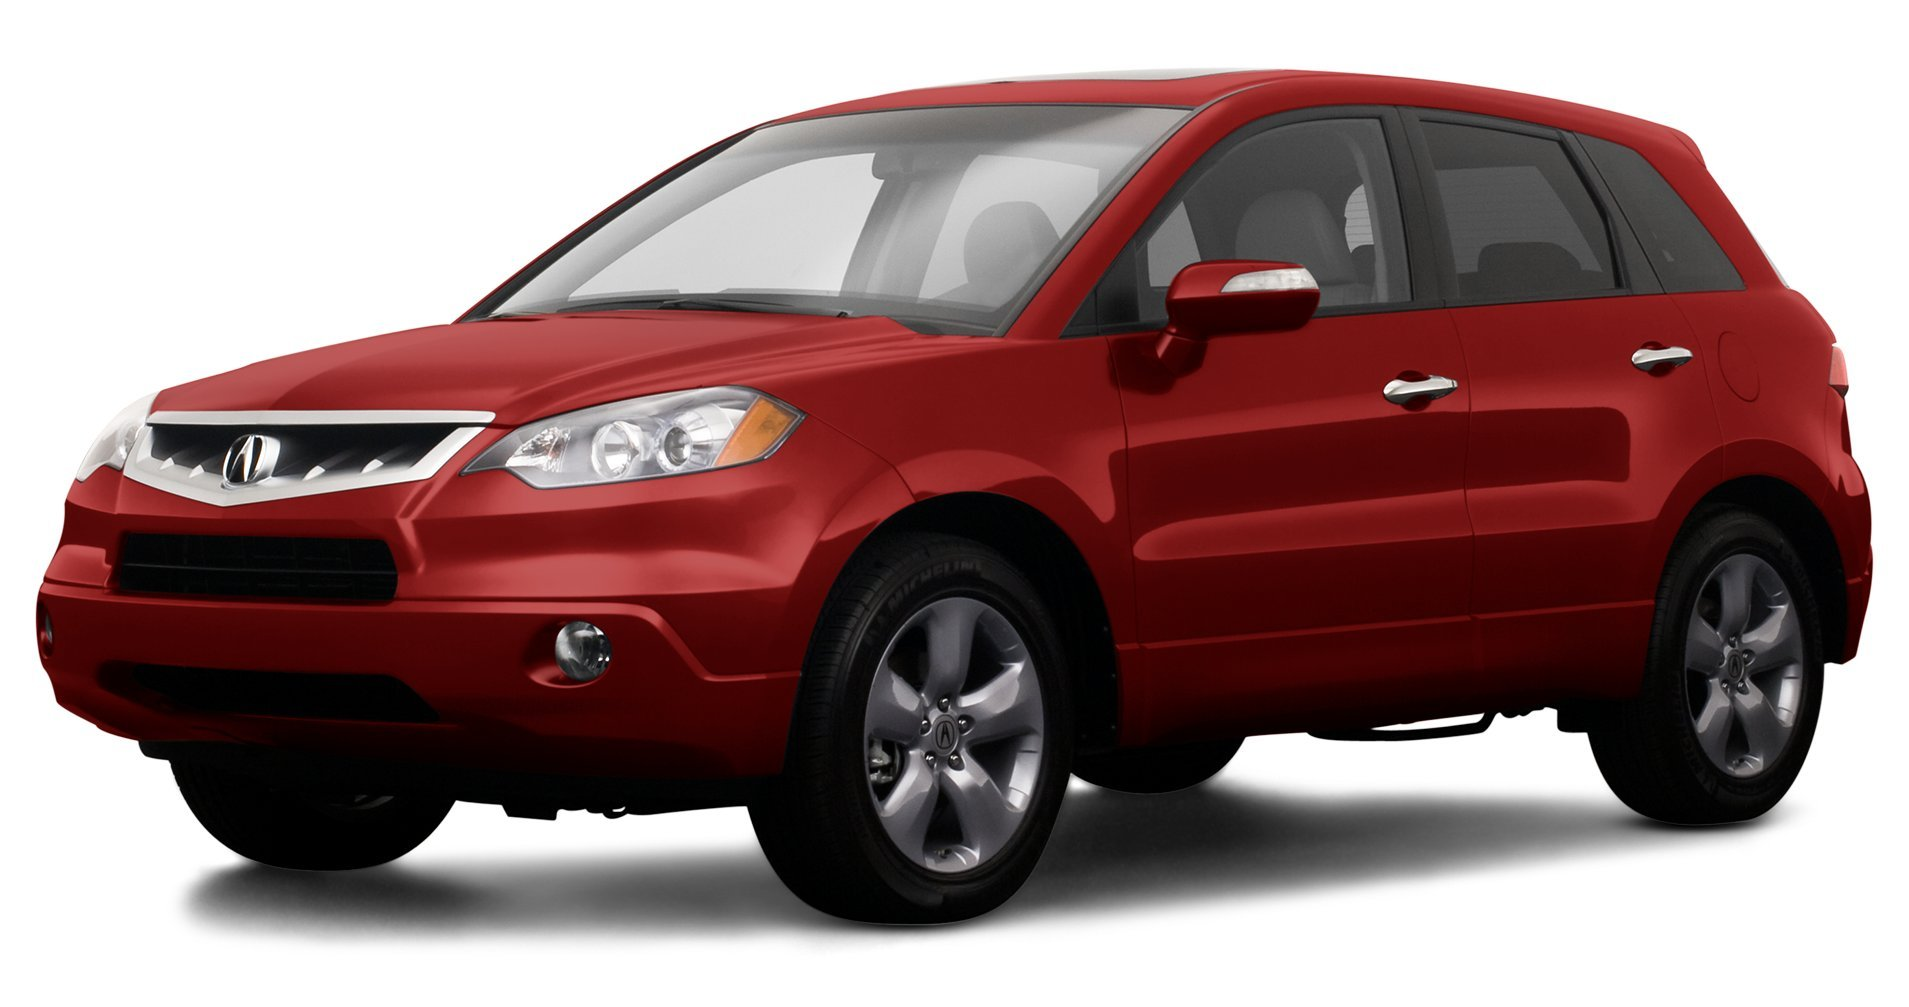 Amazon 2009 nissan murano reviews images and specs vehicles 2009 nissan murano le all wheel drive 4 door 2009 acura rdx tech package all wheel drive 4 door vanachro Choice Image